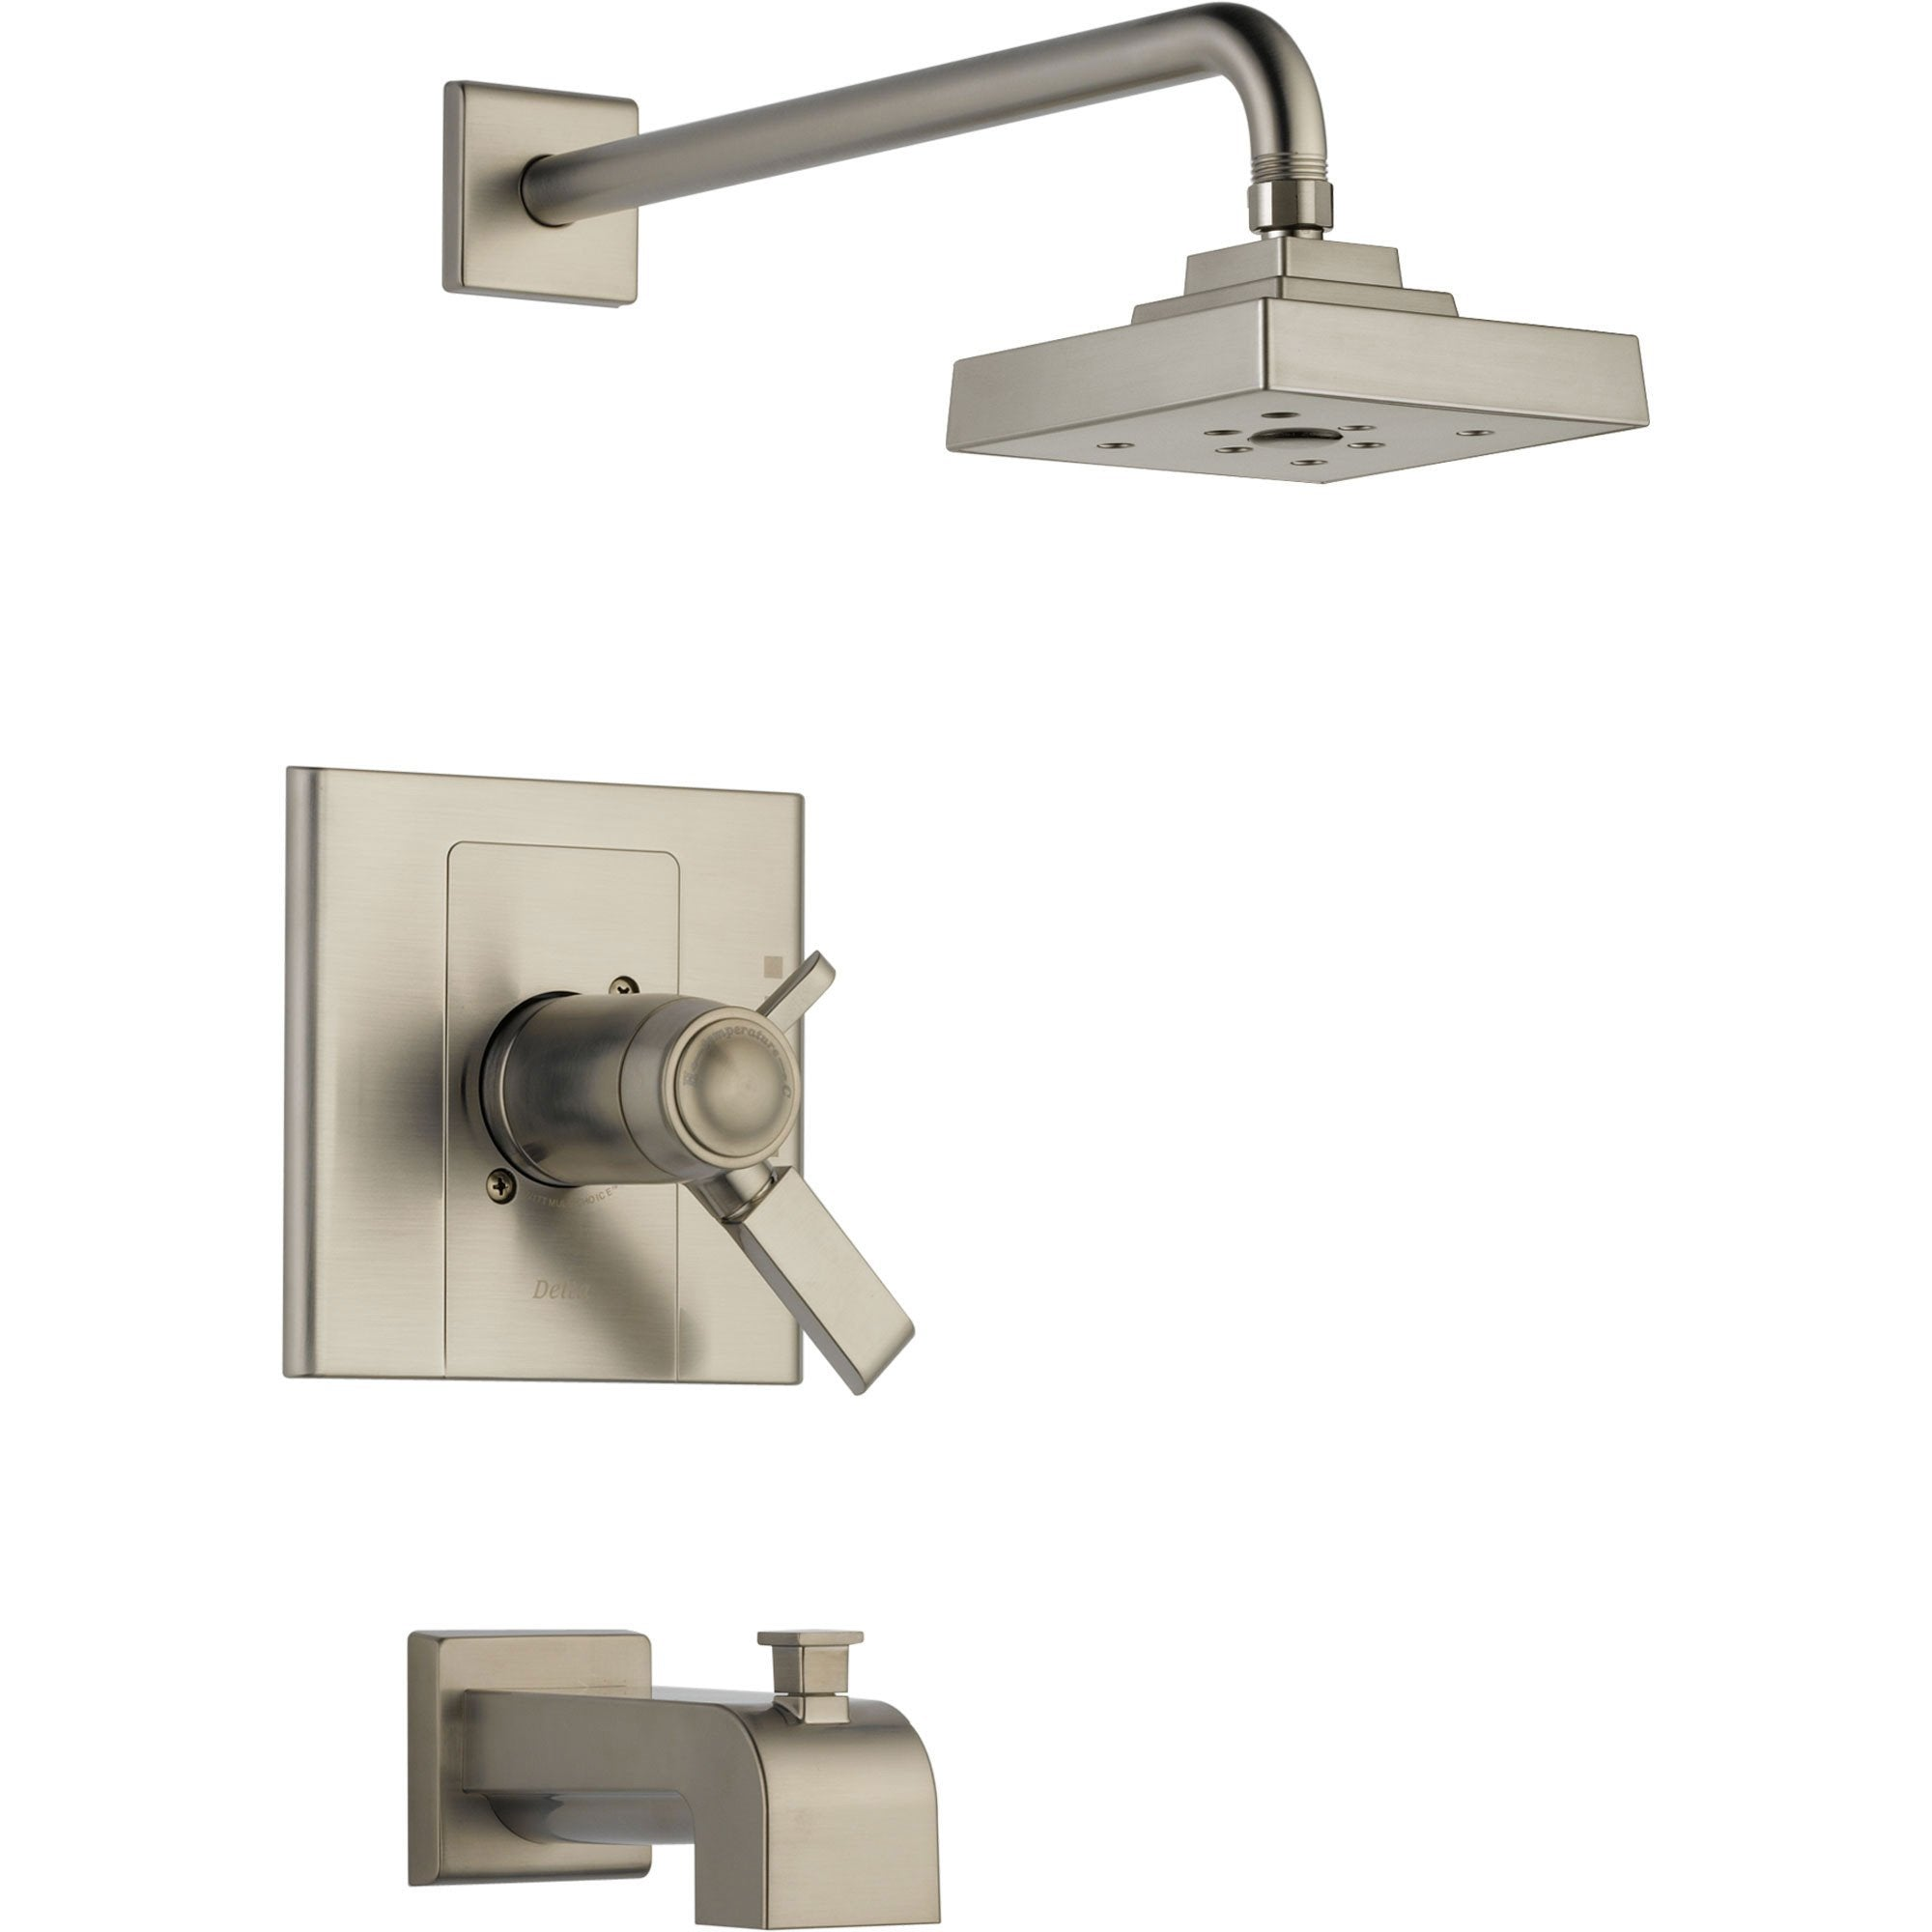 Delta Arzo Thermostatic Control Stainless Steel Tub & Shower with Valve D541V